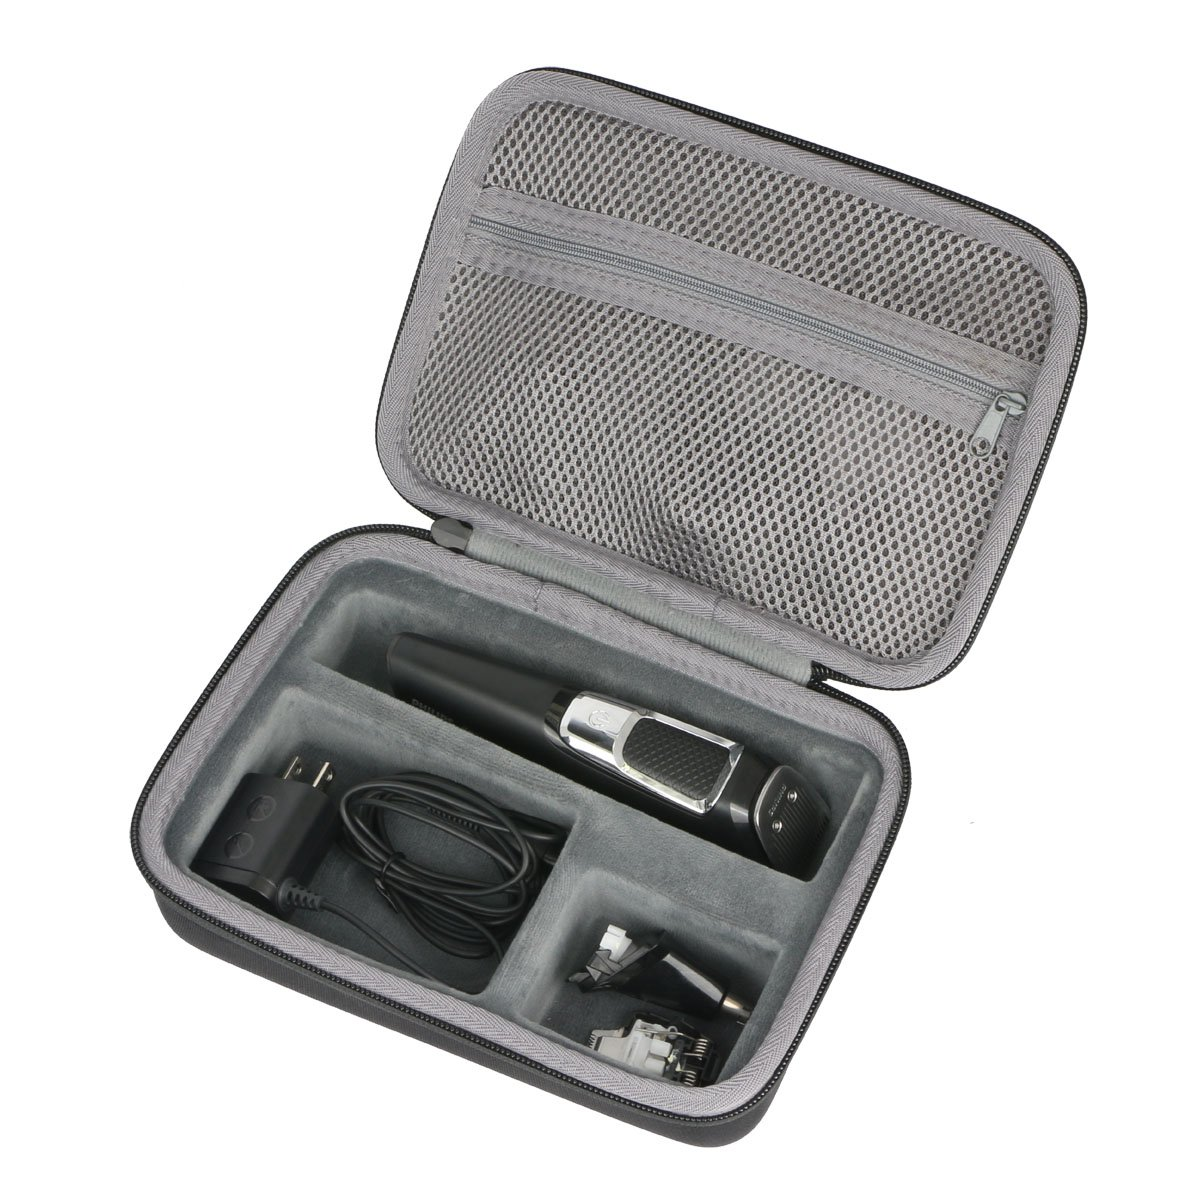 Hard Travel Case for Remington PG6025 PG525 PG6250 PG6171 All-in-1 Lithium Powered Grooming Trimmer Kit by co2CREA